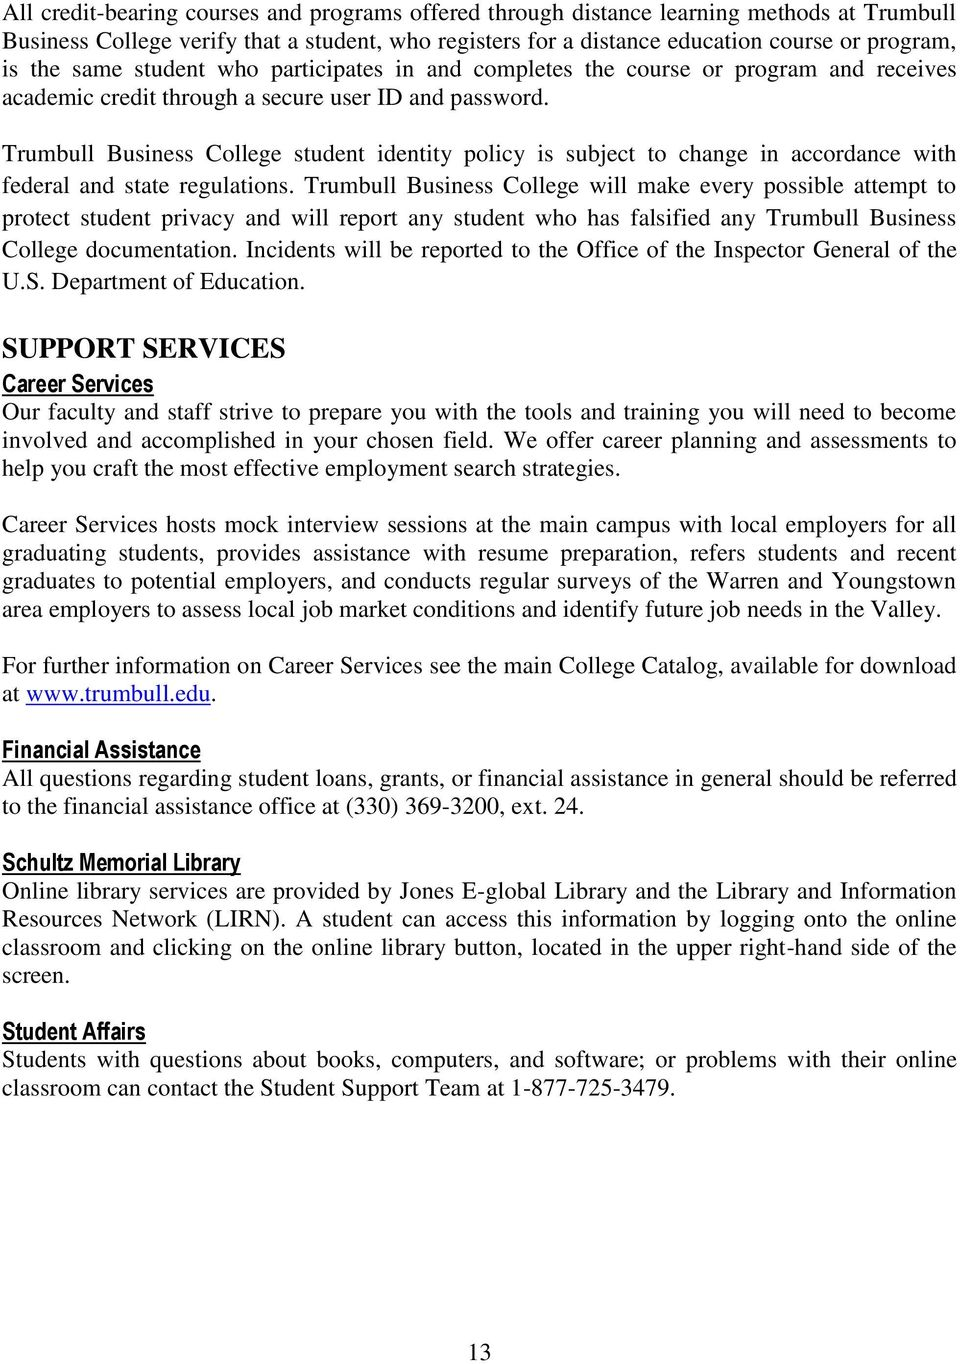 Trumbull Business College student identity policy is subject to change in accordance with federal and state regulations.